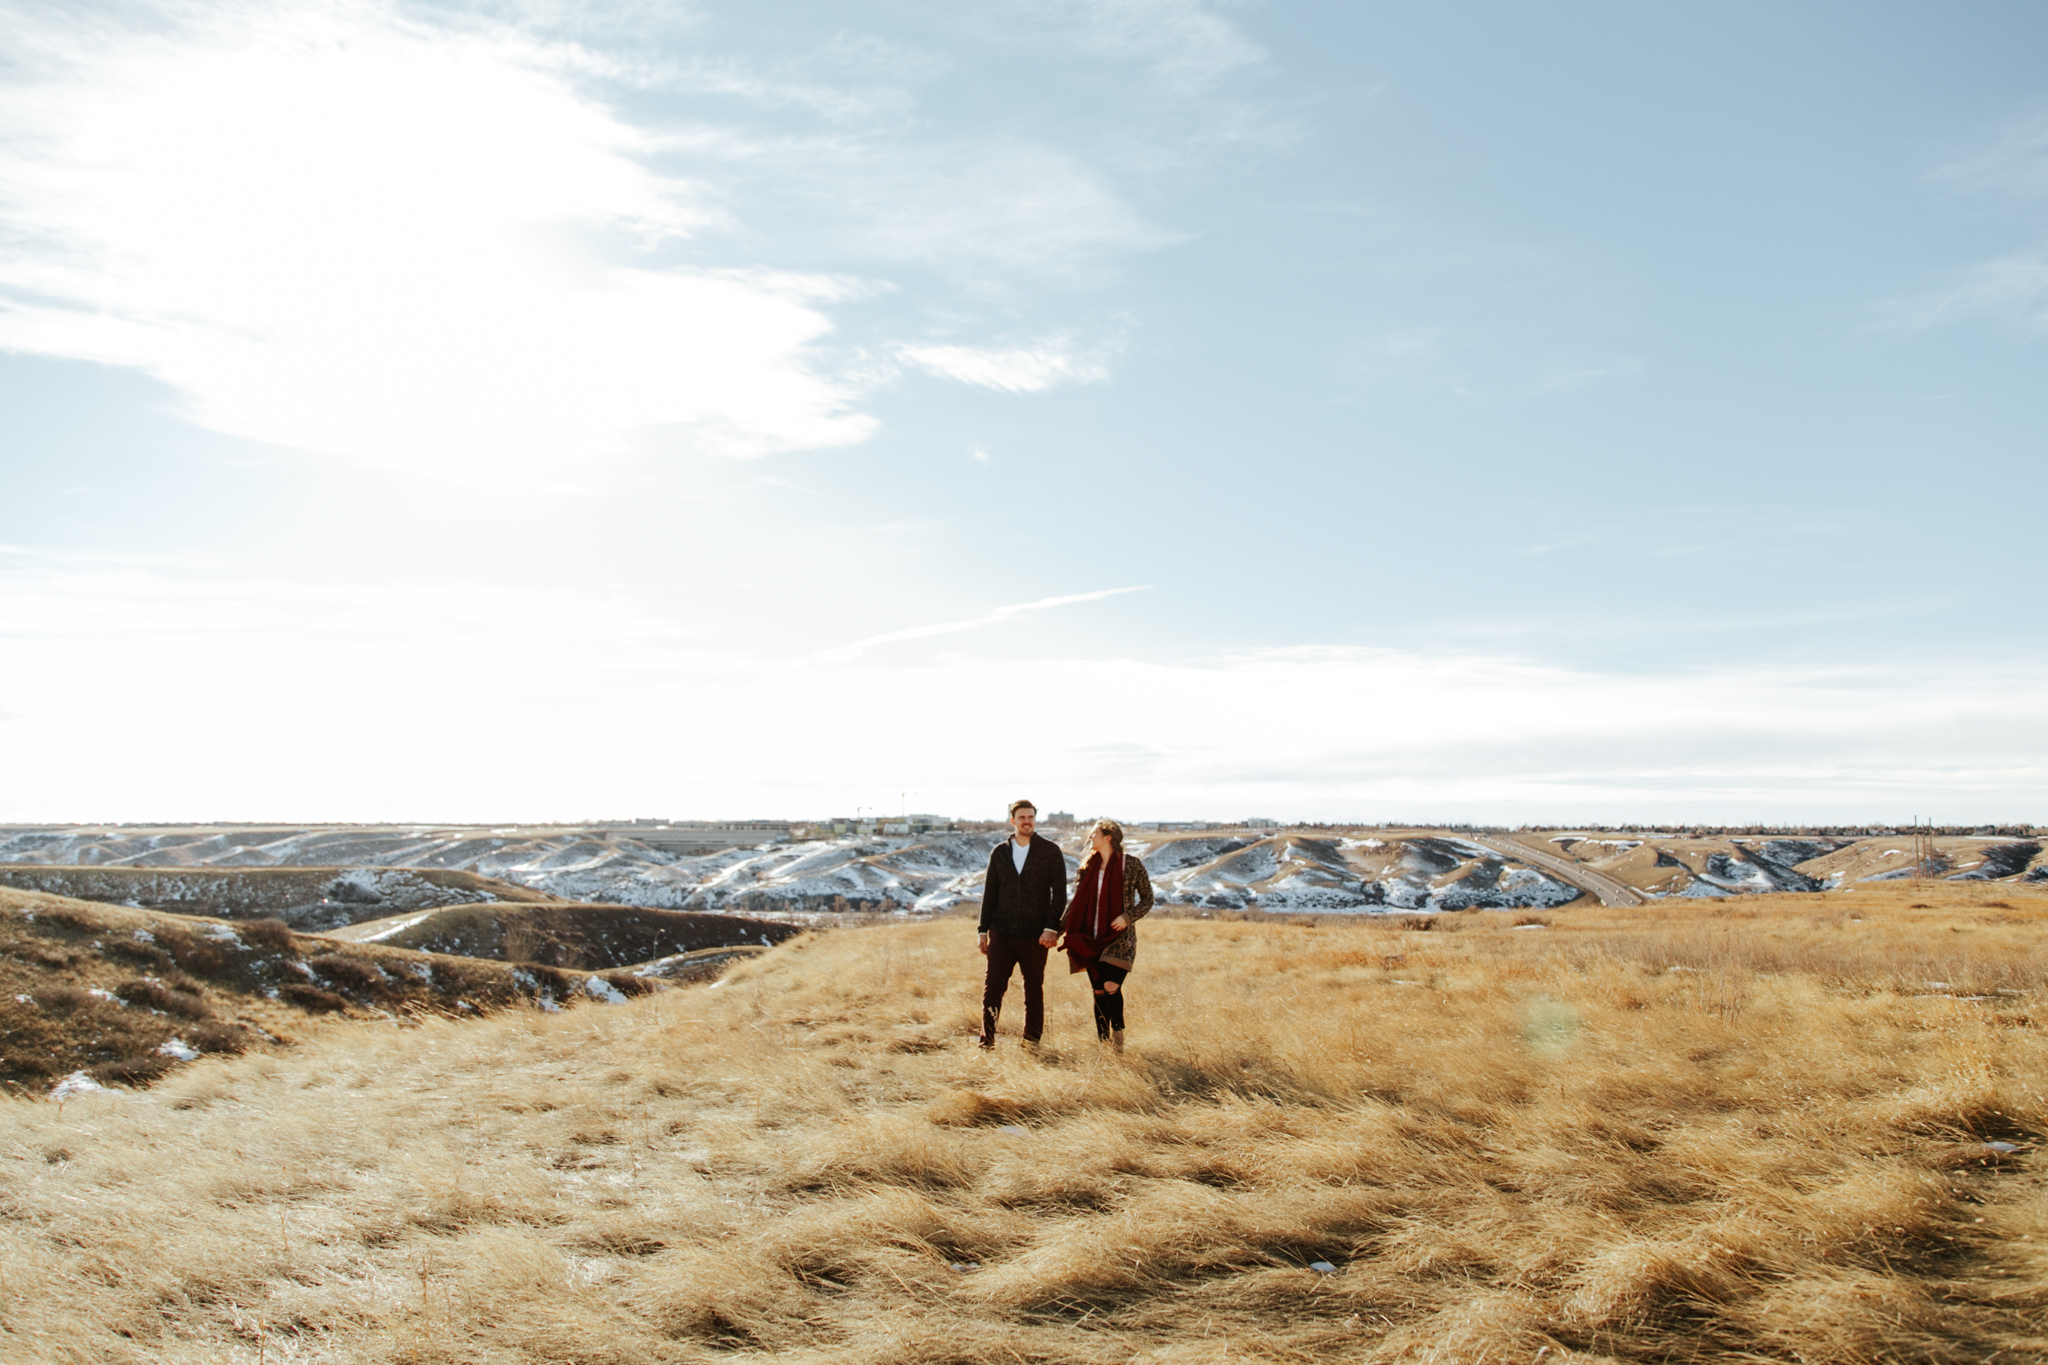 lethbridge-photographer-love-and-be-loved-photography-winter-engagement-emma-tanner-picture-image-photo-21.jpg